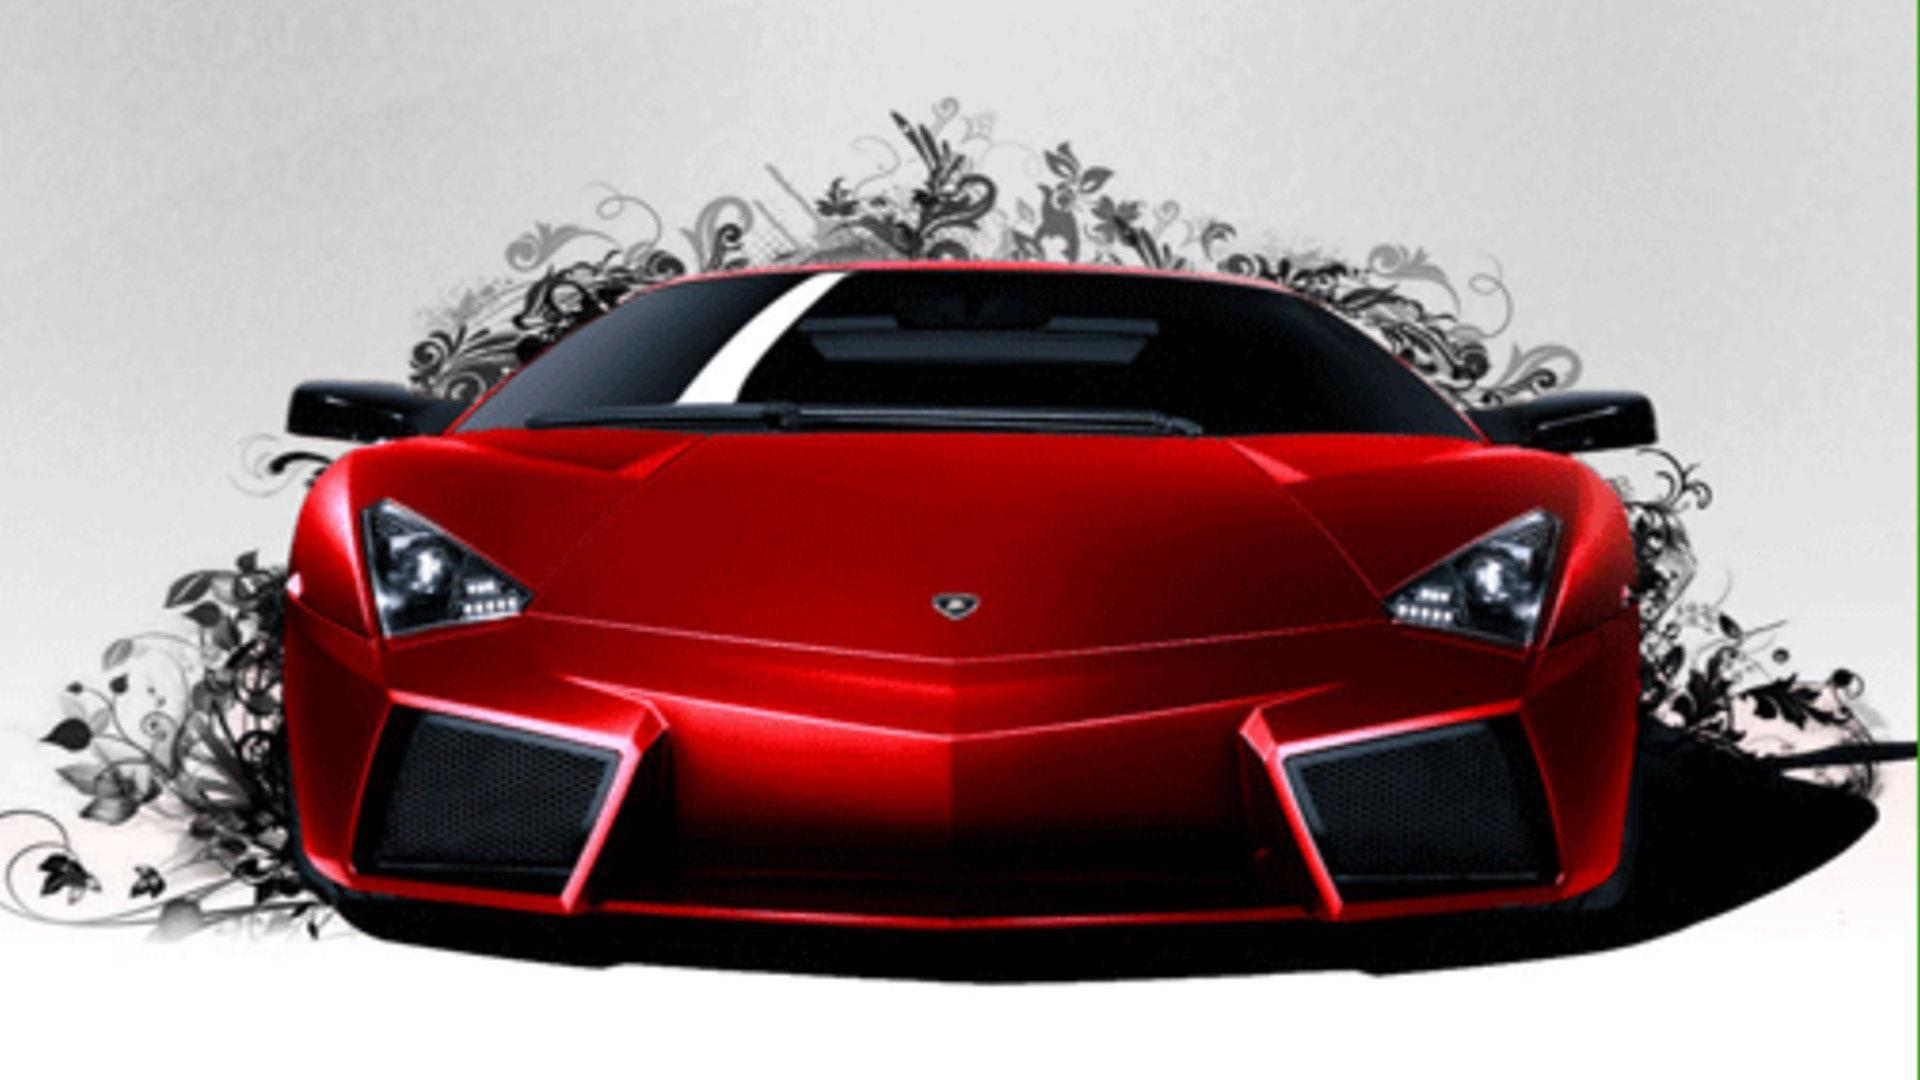 lamborghini reventon image wallpaper - photo #10